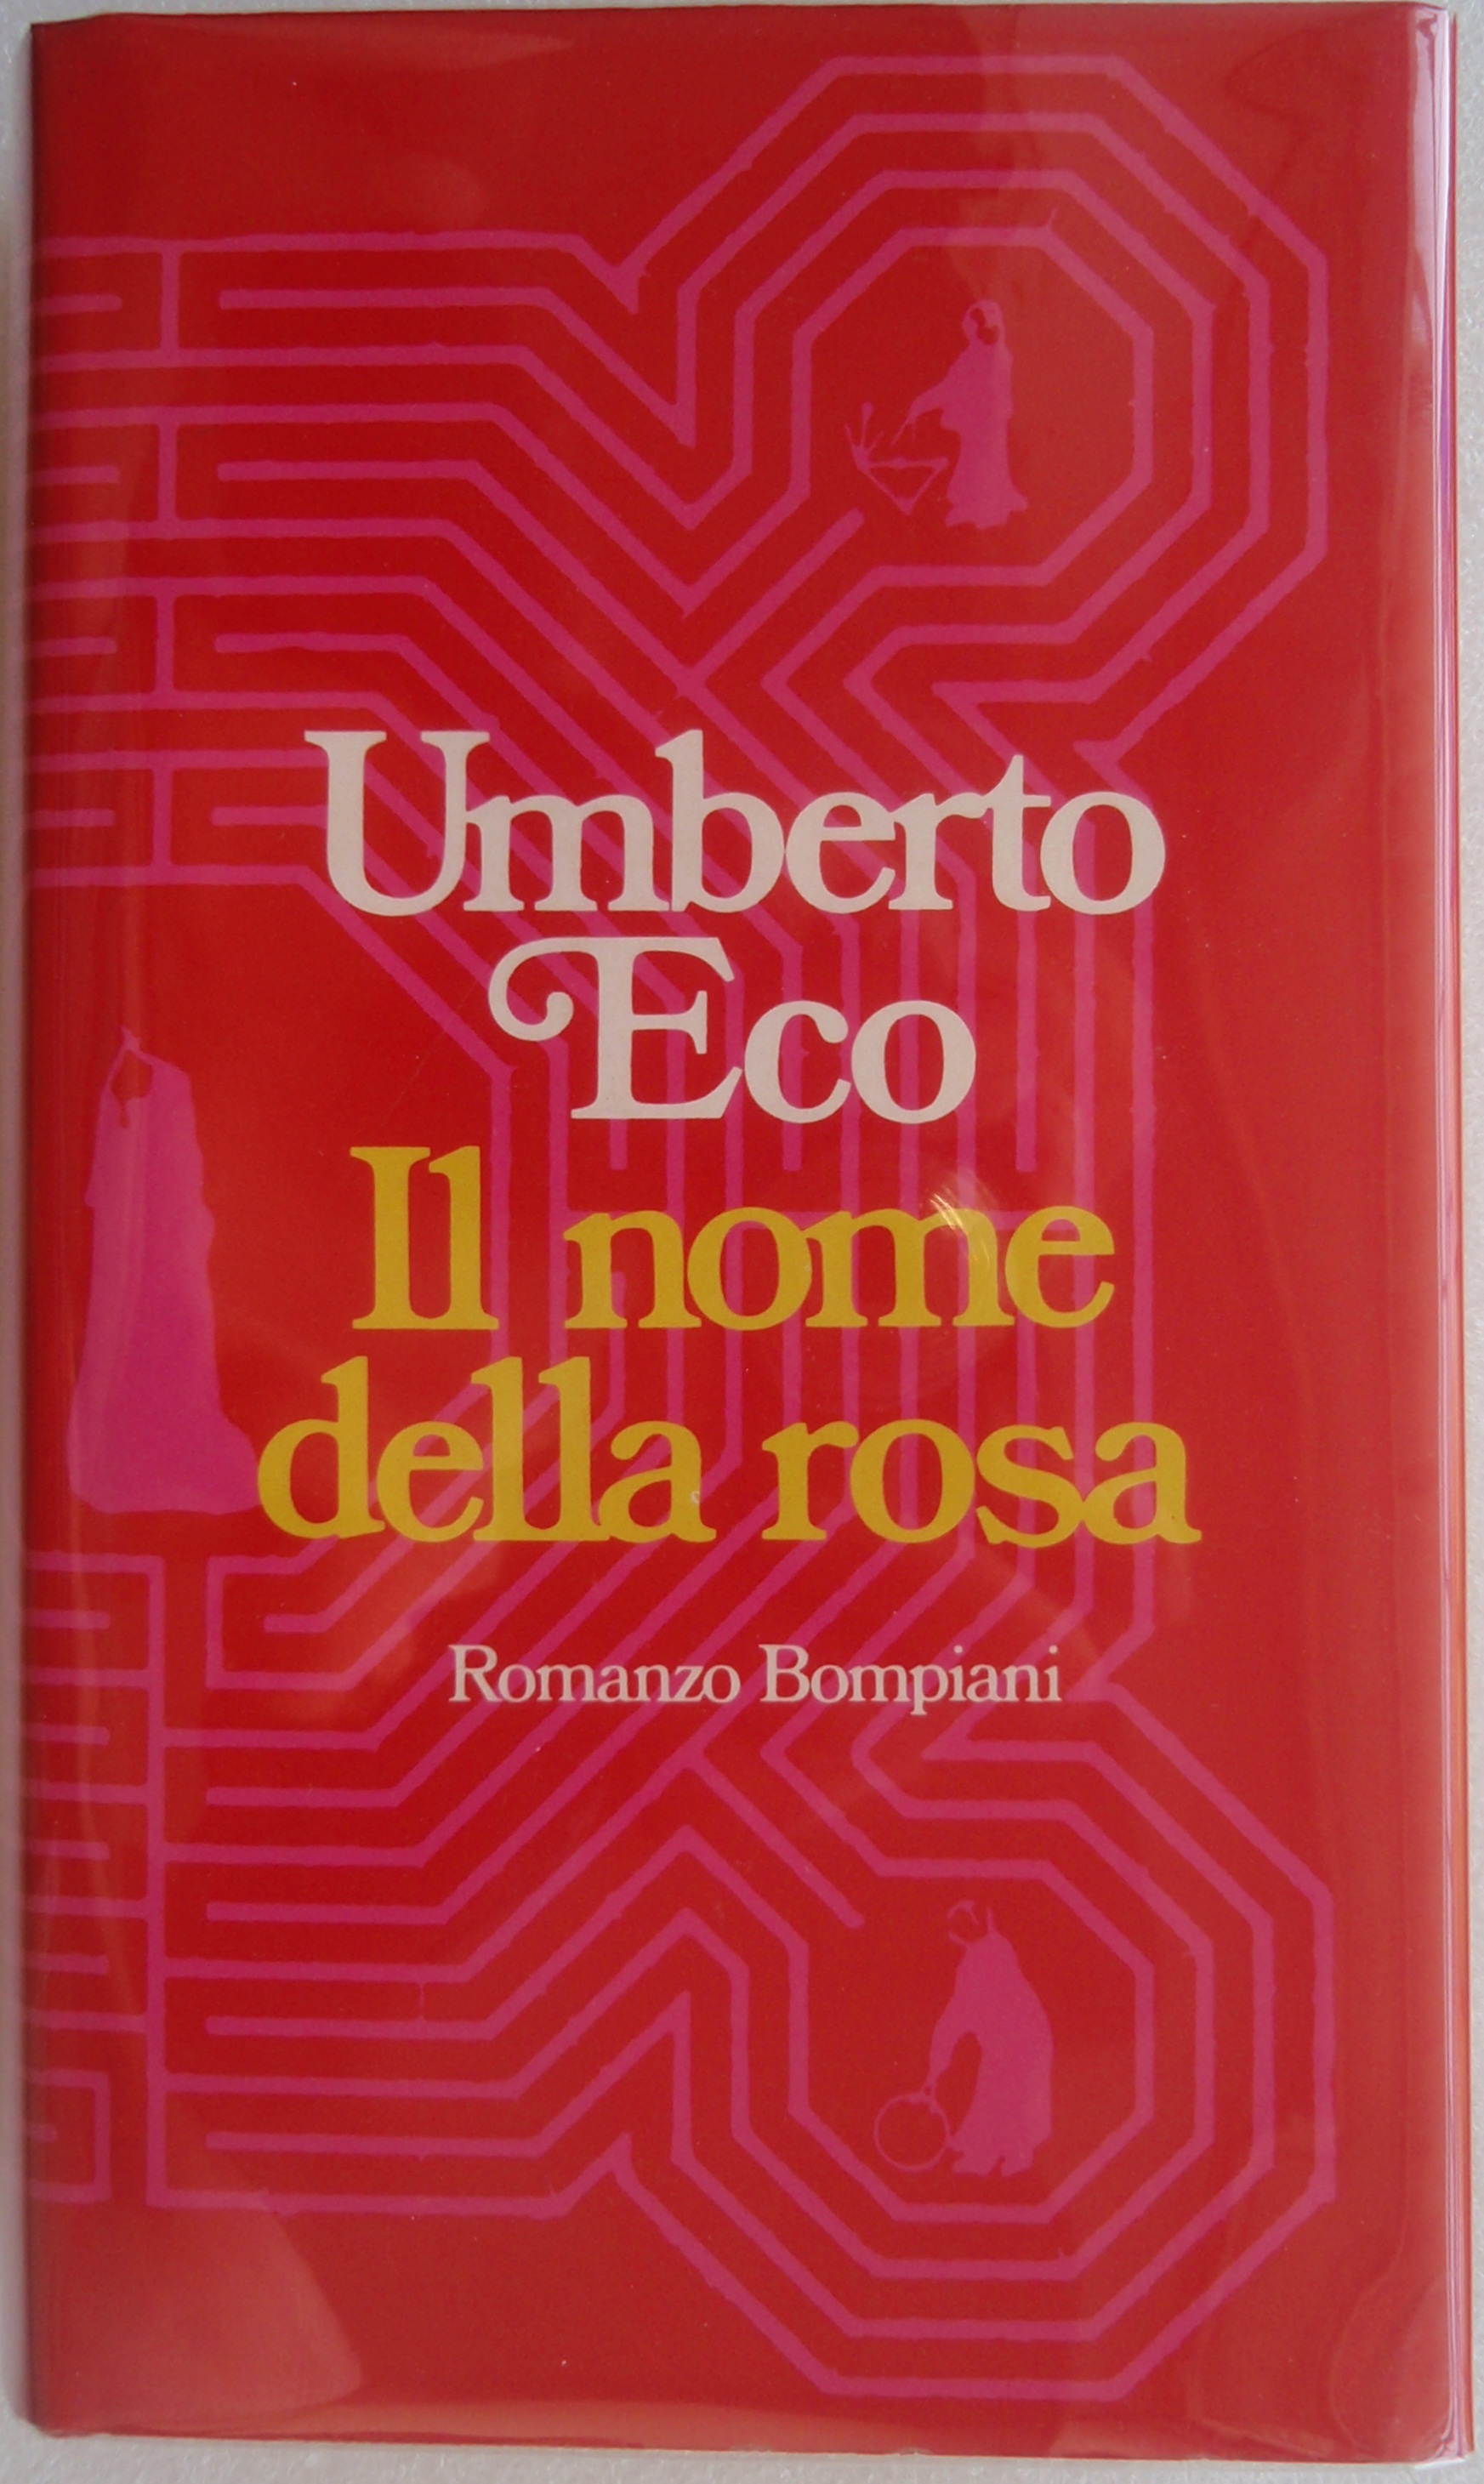 Umberto_Ecos_famous_first_novel_Il_Nome_della_Rosa_(Bompianis_copy_No._9069)._The_book_....jpg